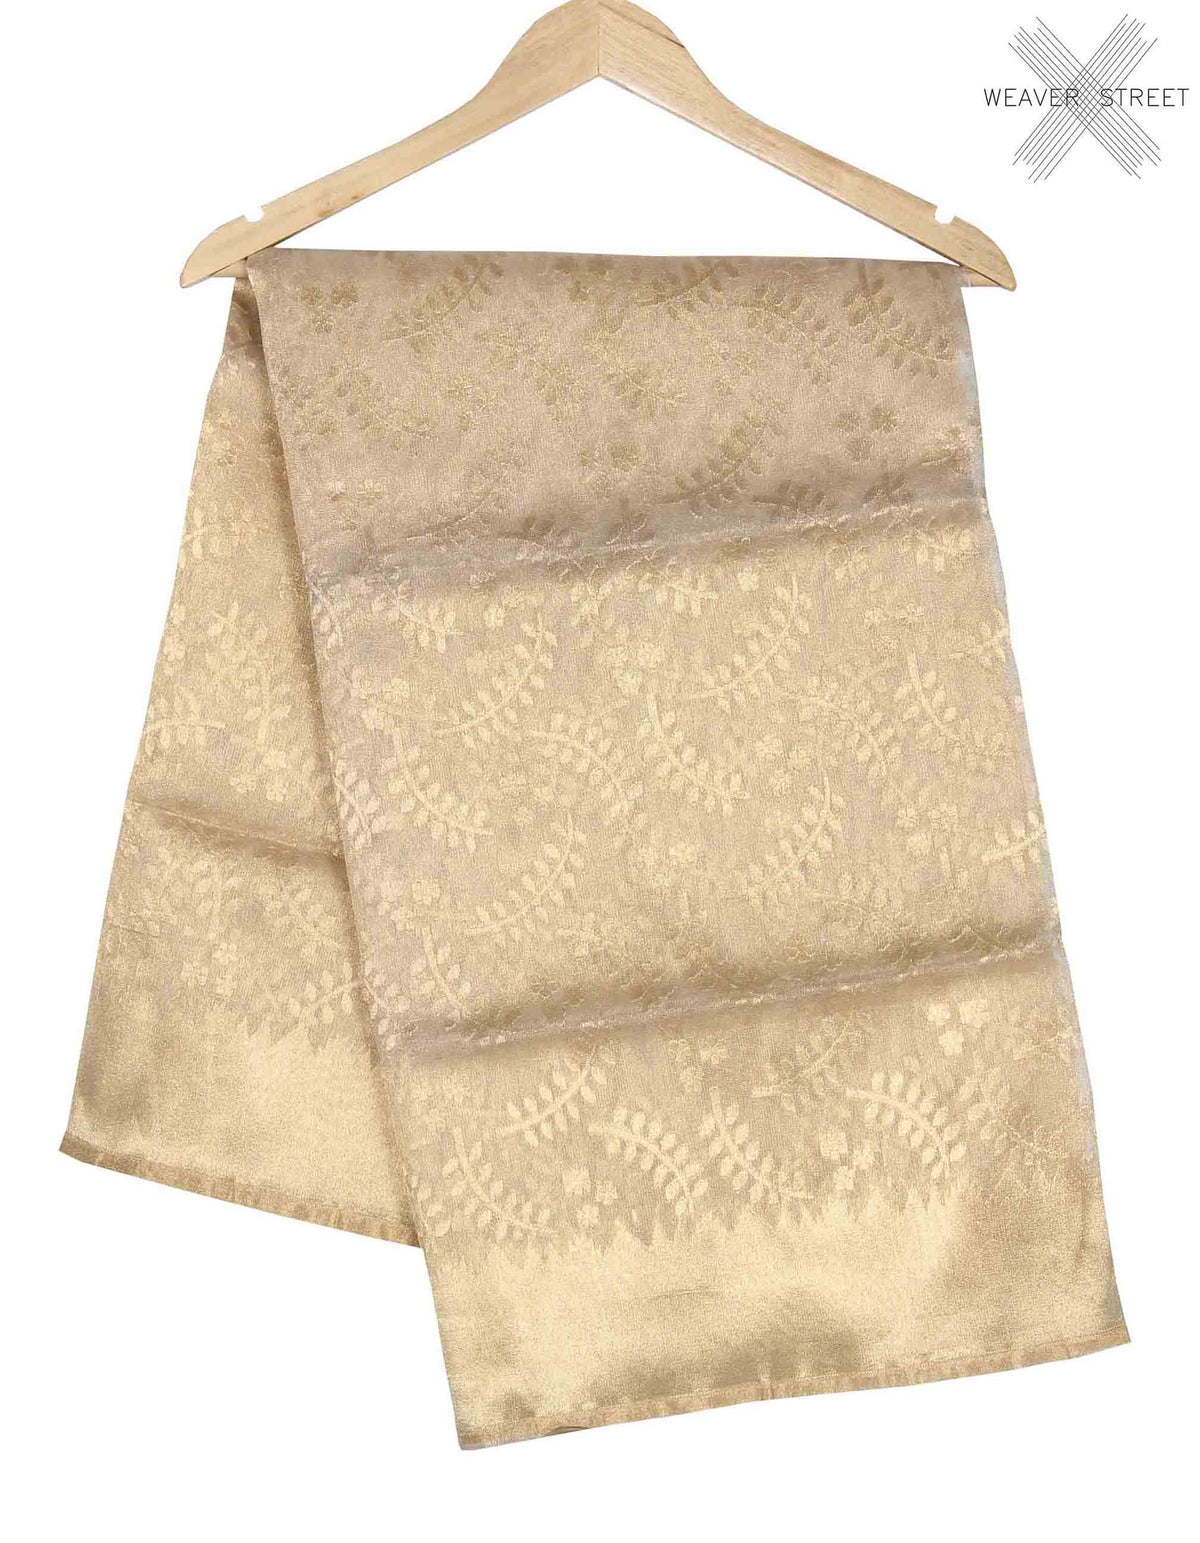 Beige Kora Silk Net tissue handwoven Banarasi saree with stylized leaf motifs (1) main